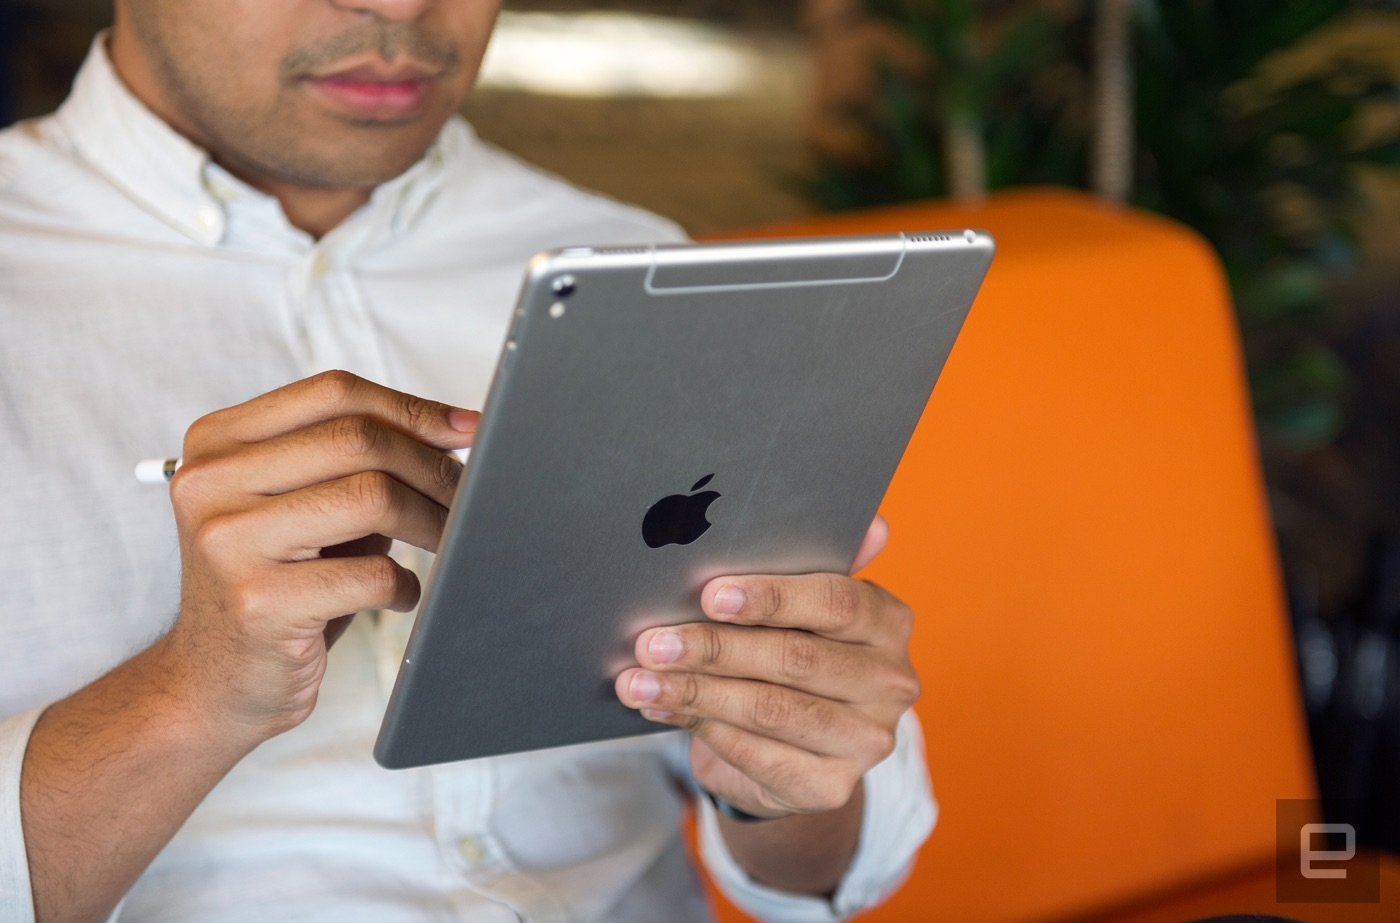 iPad Pro 9.7 review: Apple's best tablet, but it won't replace a laptop